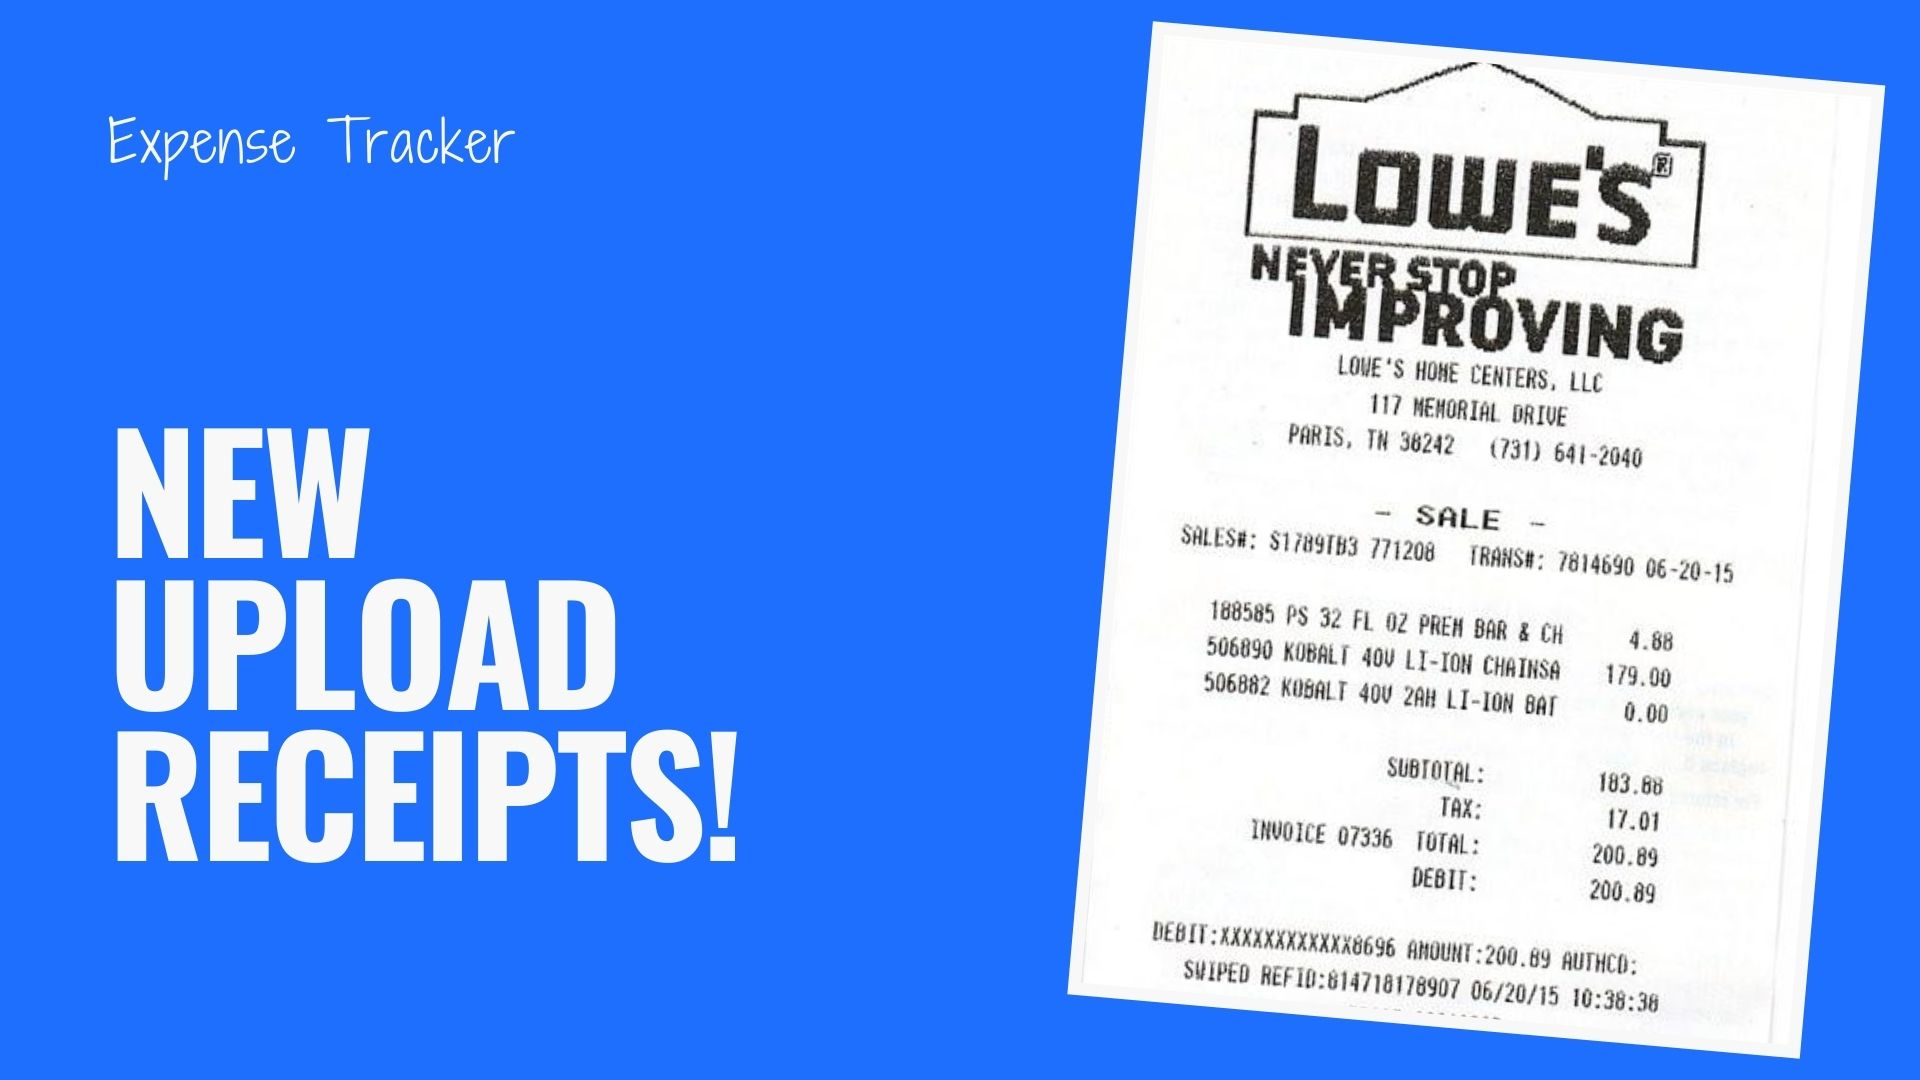 New Upload Receipts and Invoice Images to the Expense Tracker!